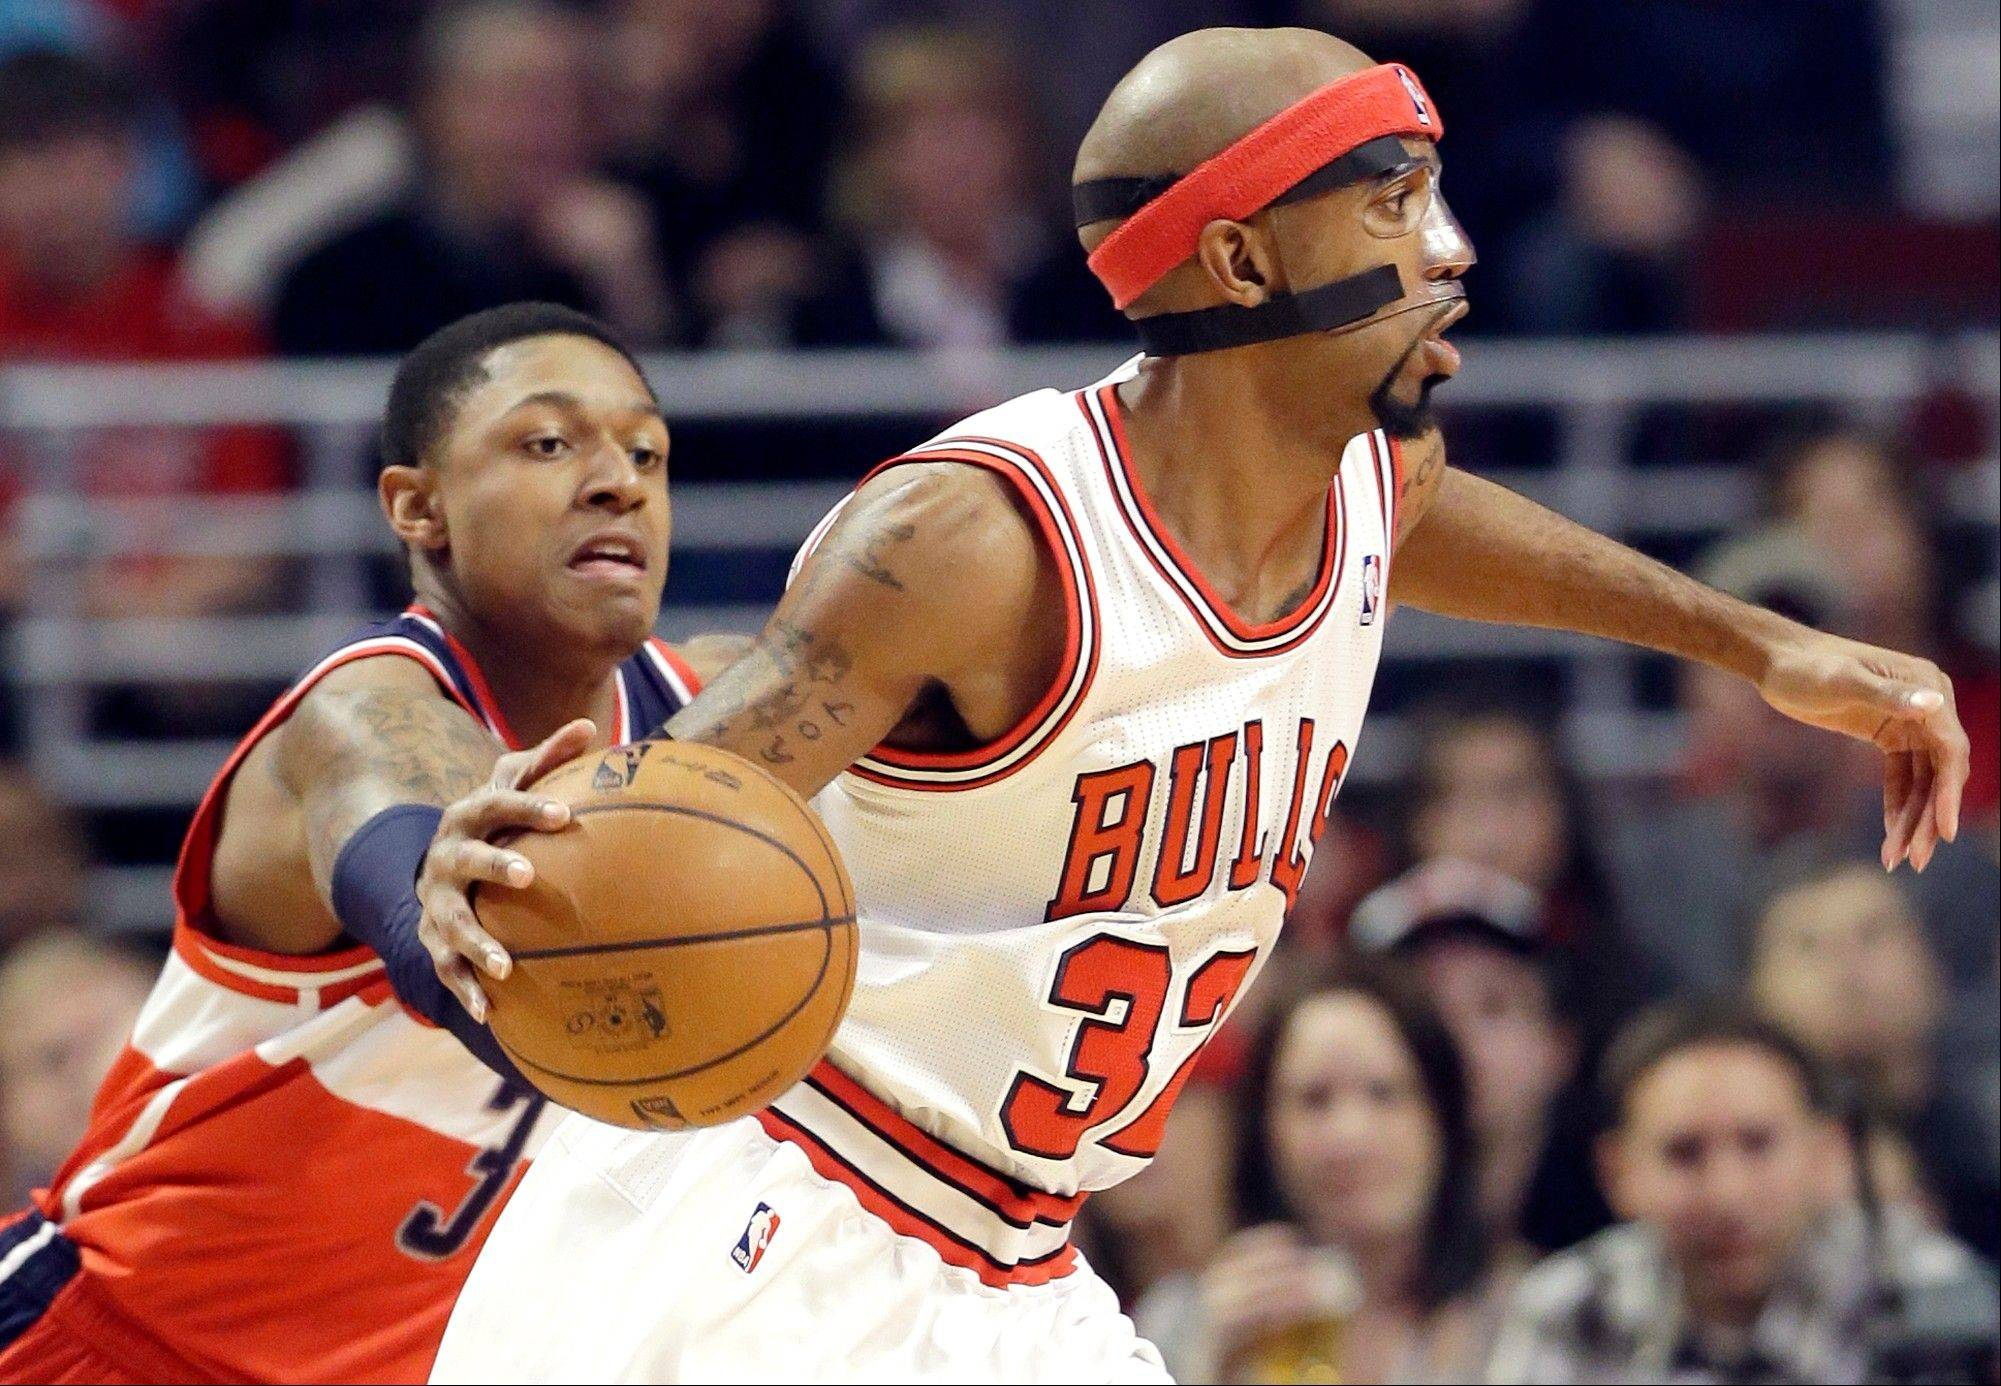 Bulls guard Richard Hamilton, right, looks to a pass as Washington Wizards guard Bradley Beal defends during the first half of an NBA basketball game in Chicago on Saturday, Dec. 29, 2012.